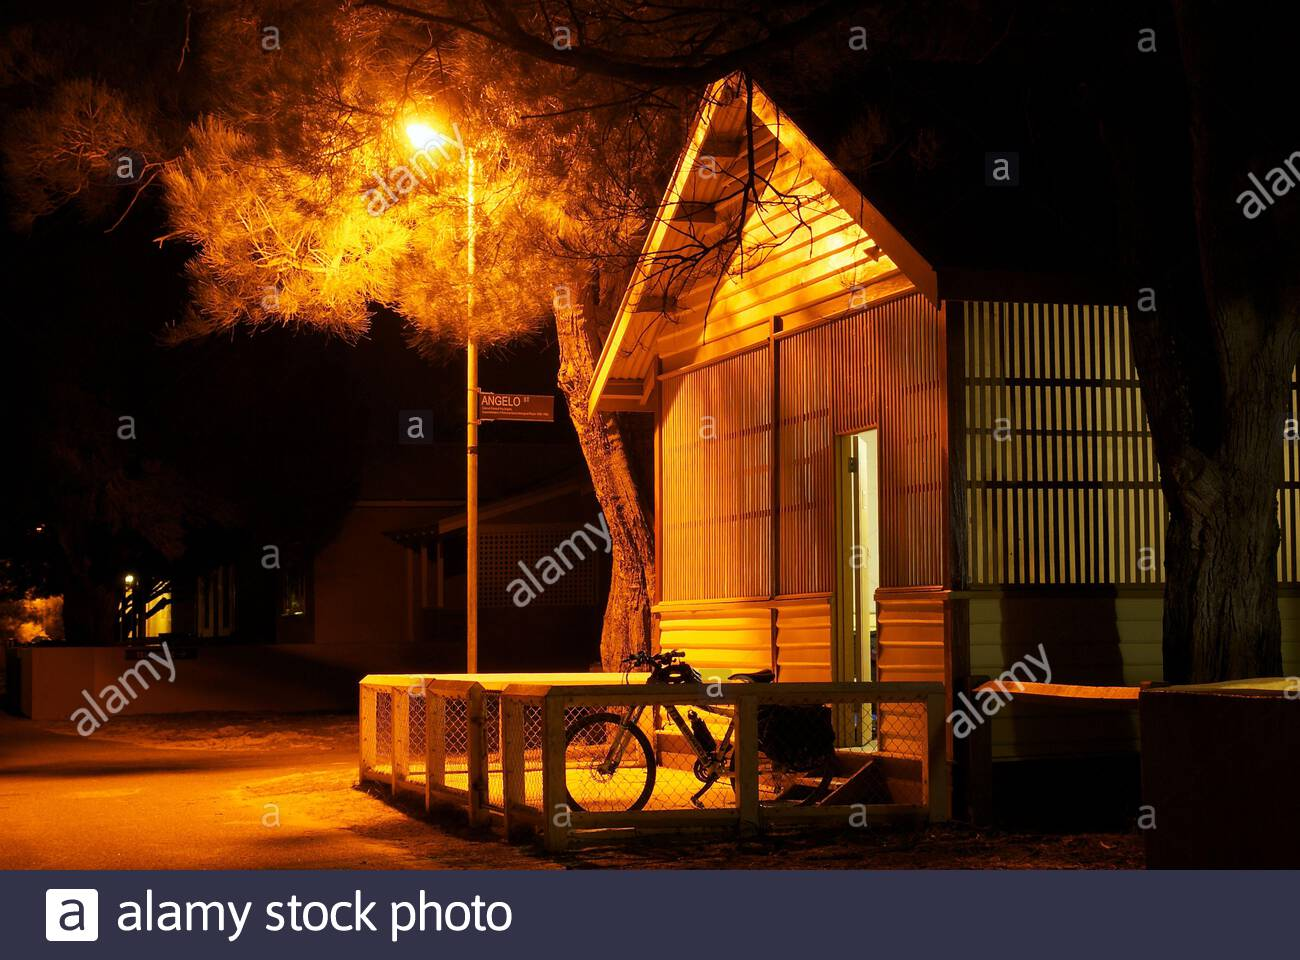 bungalow-at-night-at-the-thomson-bay-settlement-on-rottnest-island-western-australia-the-bungalows-were-built-in-the-1920s-2AP4W08.jpg